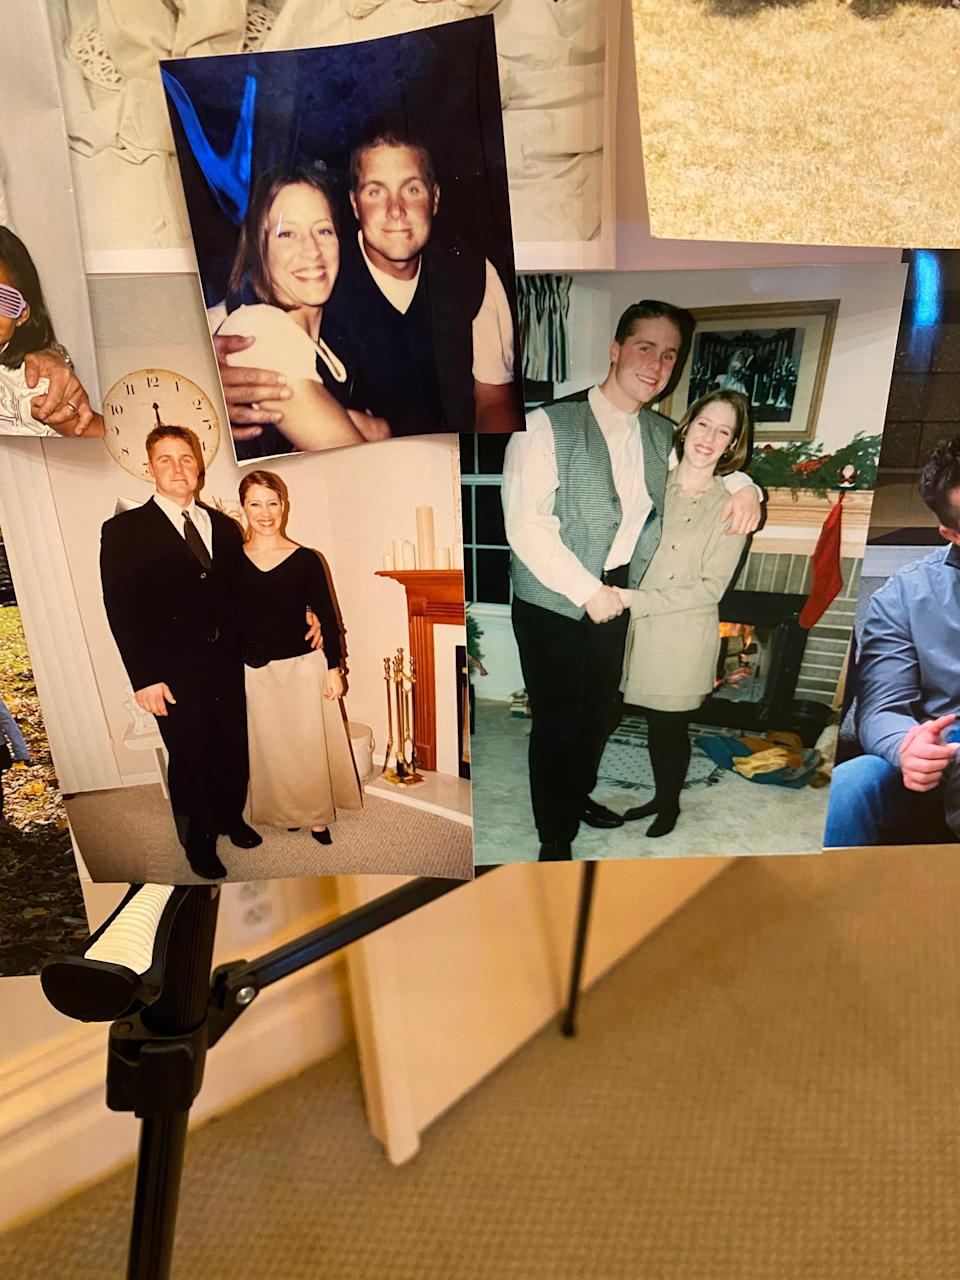 Photo collage of Ben Price, 48, and wife Jennifer Price, 45.